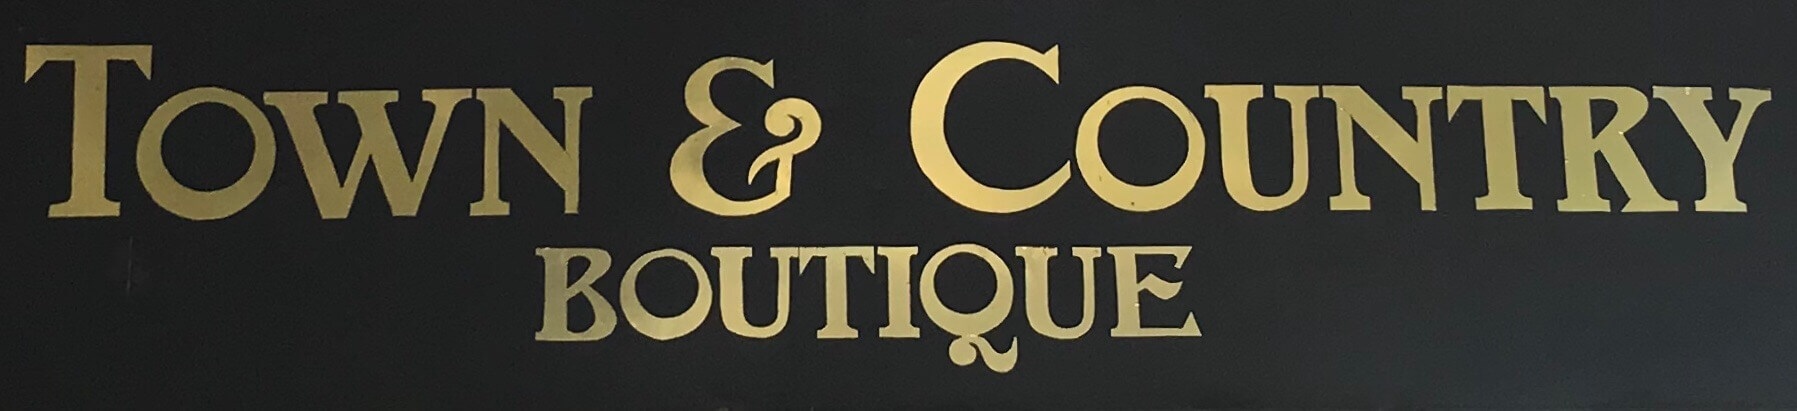 Town & Country Boutique